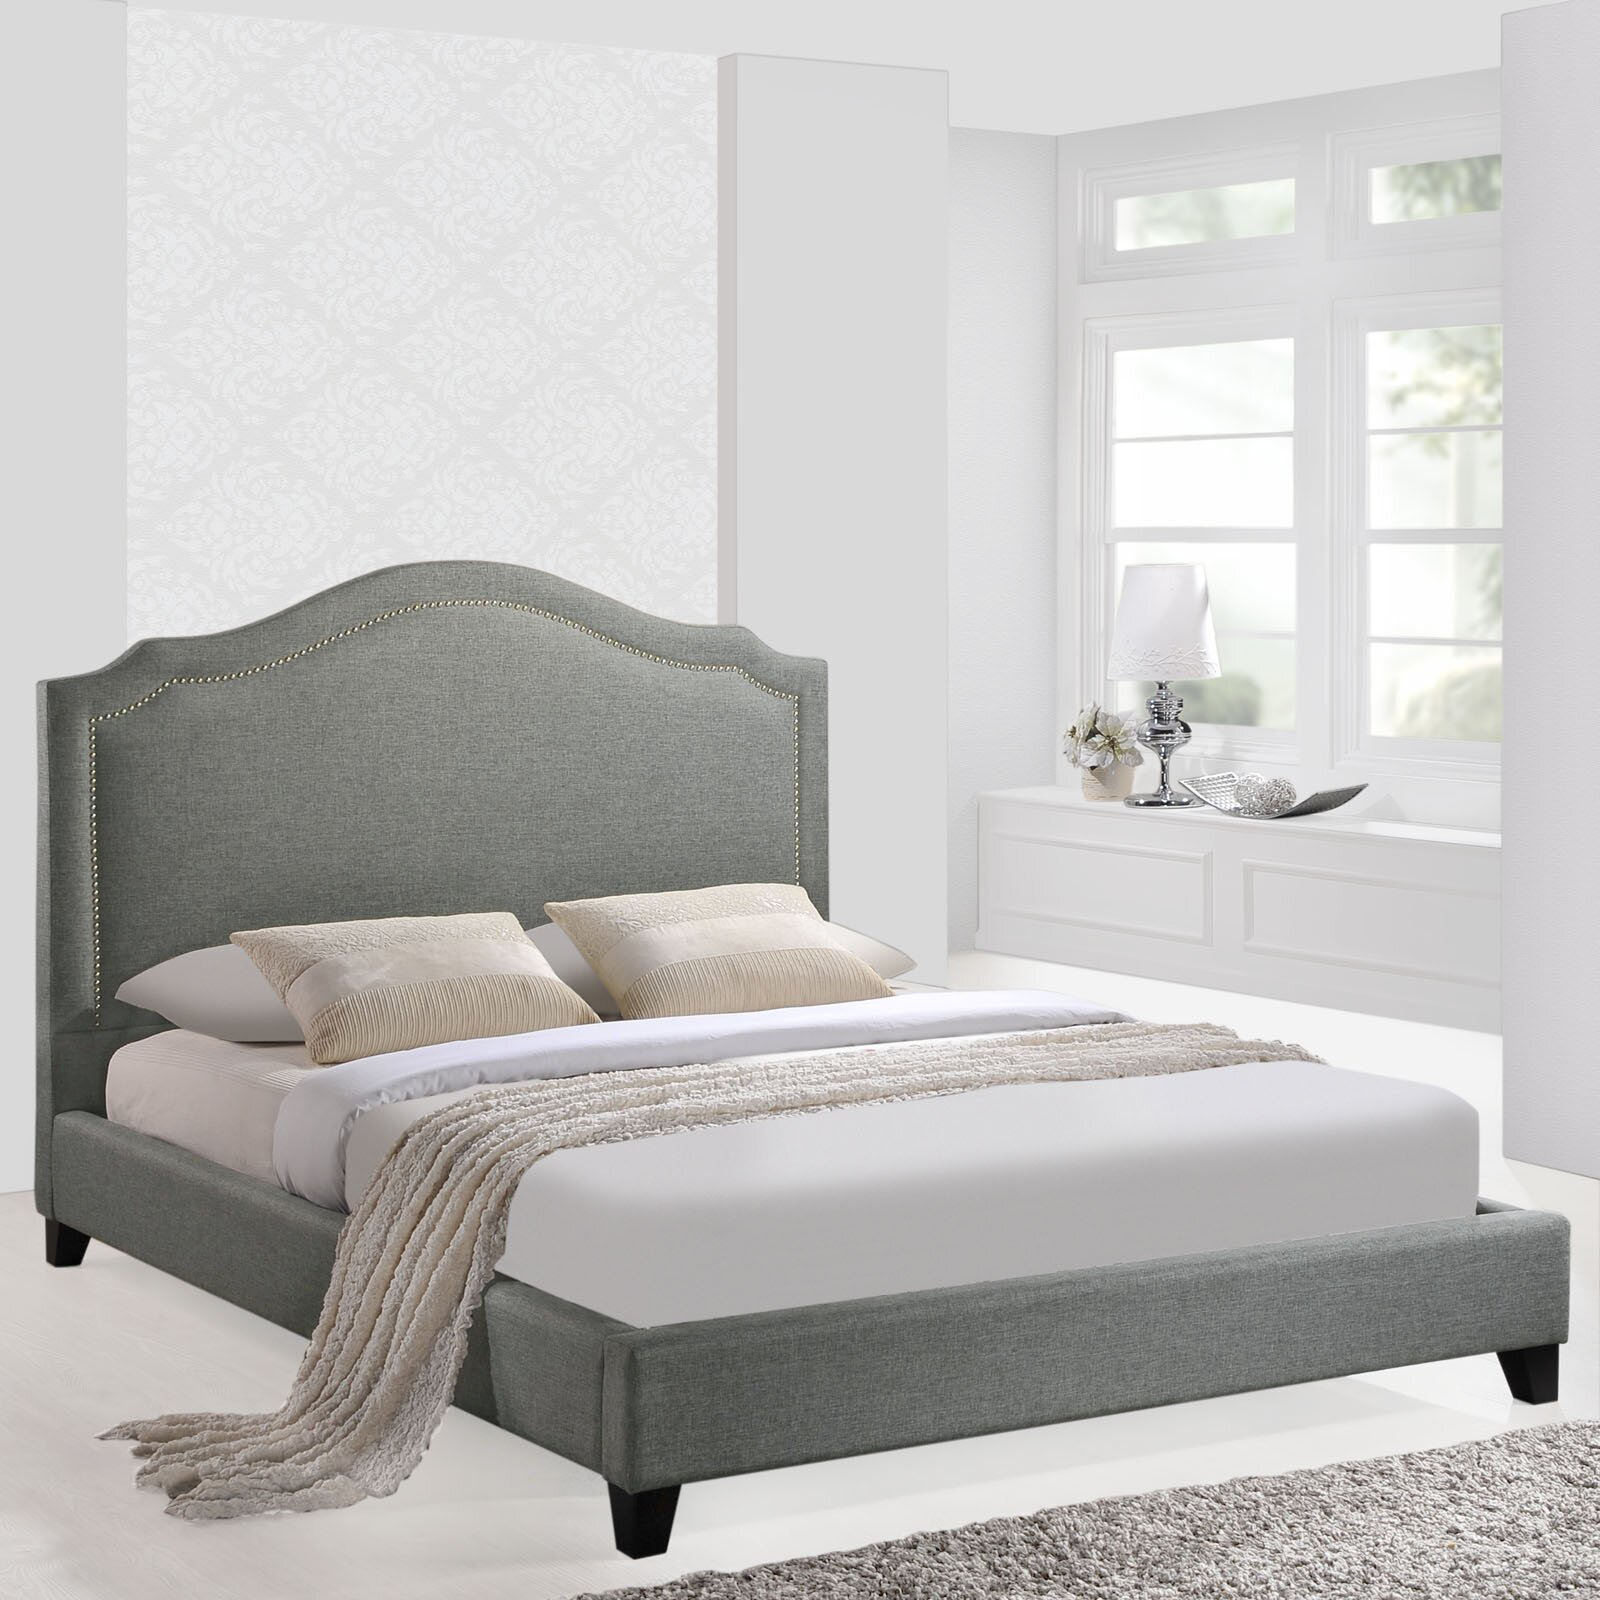 Modway Queen Upholstered Platform Bed Amp Reviews Wayfair